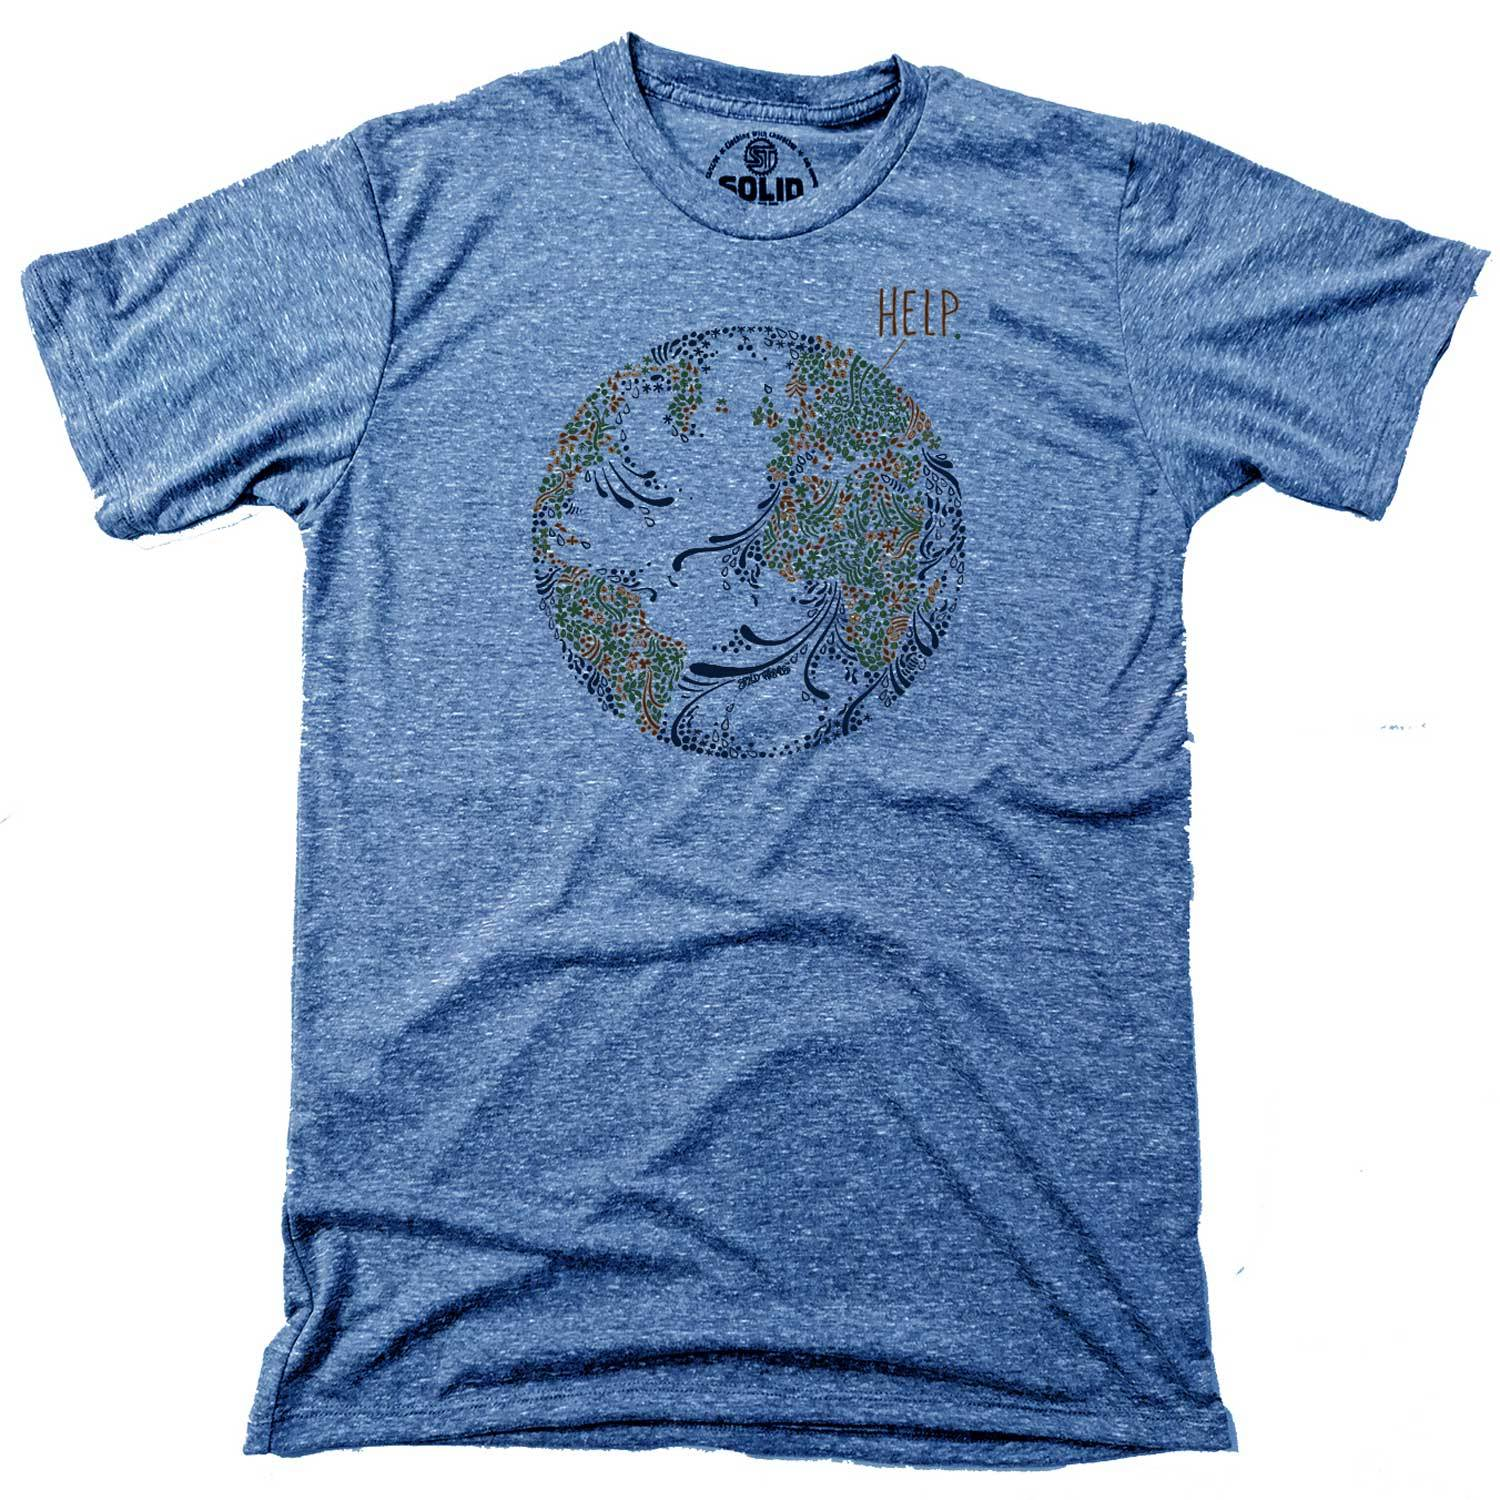 Men's Earth Help Vintage Inspired T-Shirt | Cool Environmentalism Graphic Tee | Solid Threads